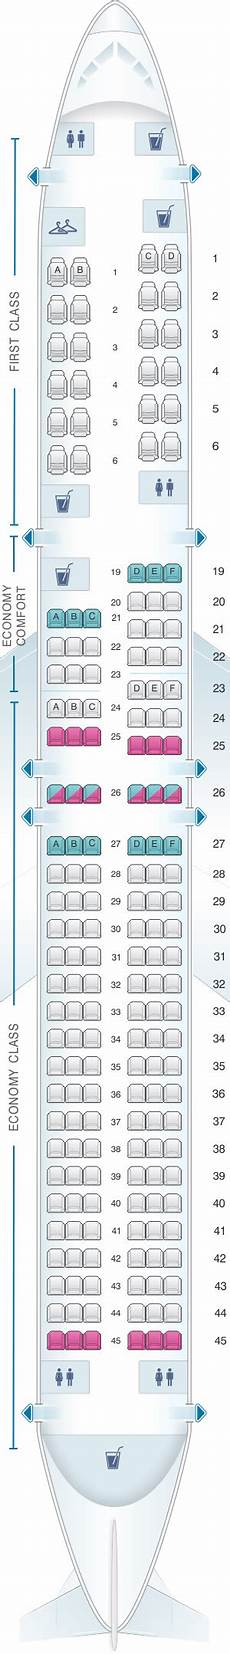 Delta Airlines Seating Chart Seat Map Delta Air Lines Boeing B757 200 757 Seatmaestro